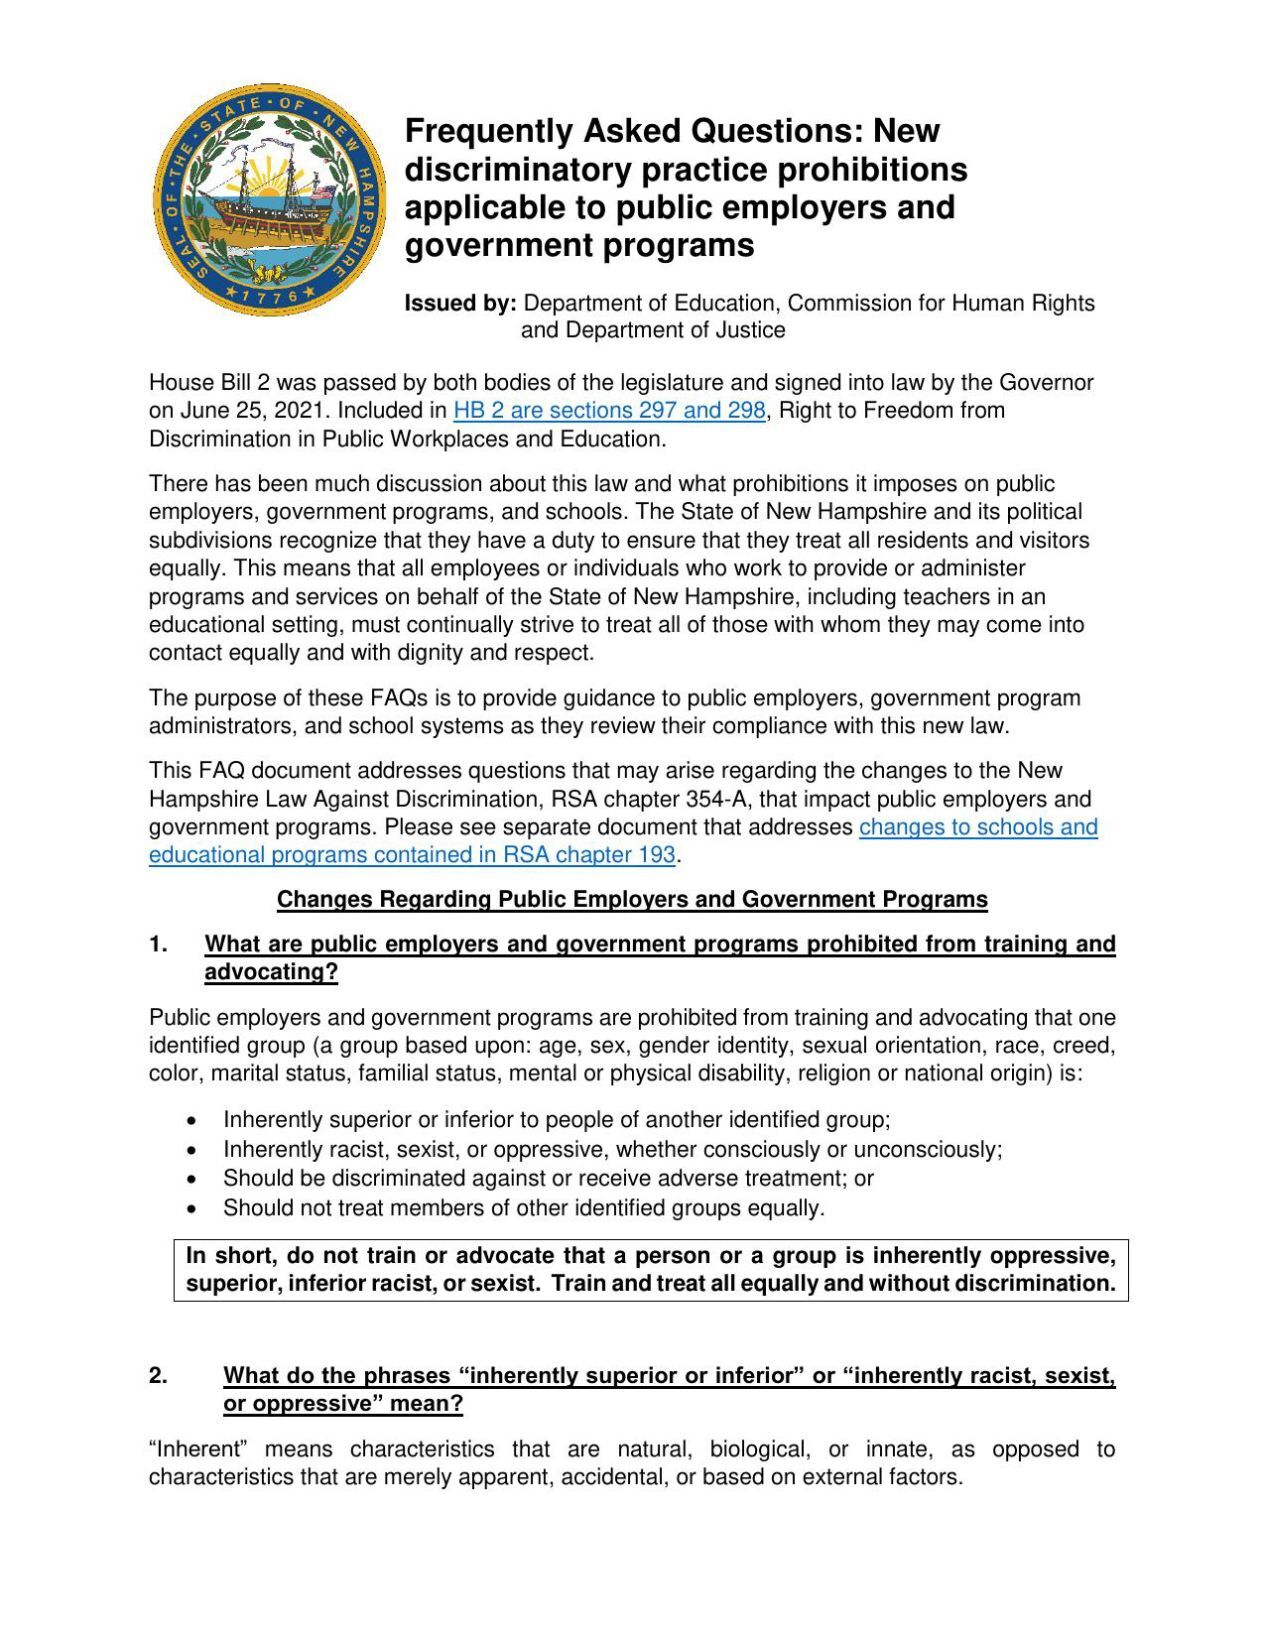 Guidance for public employers and government programs